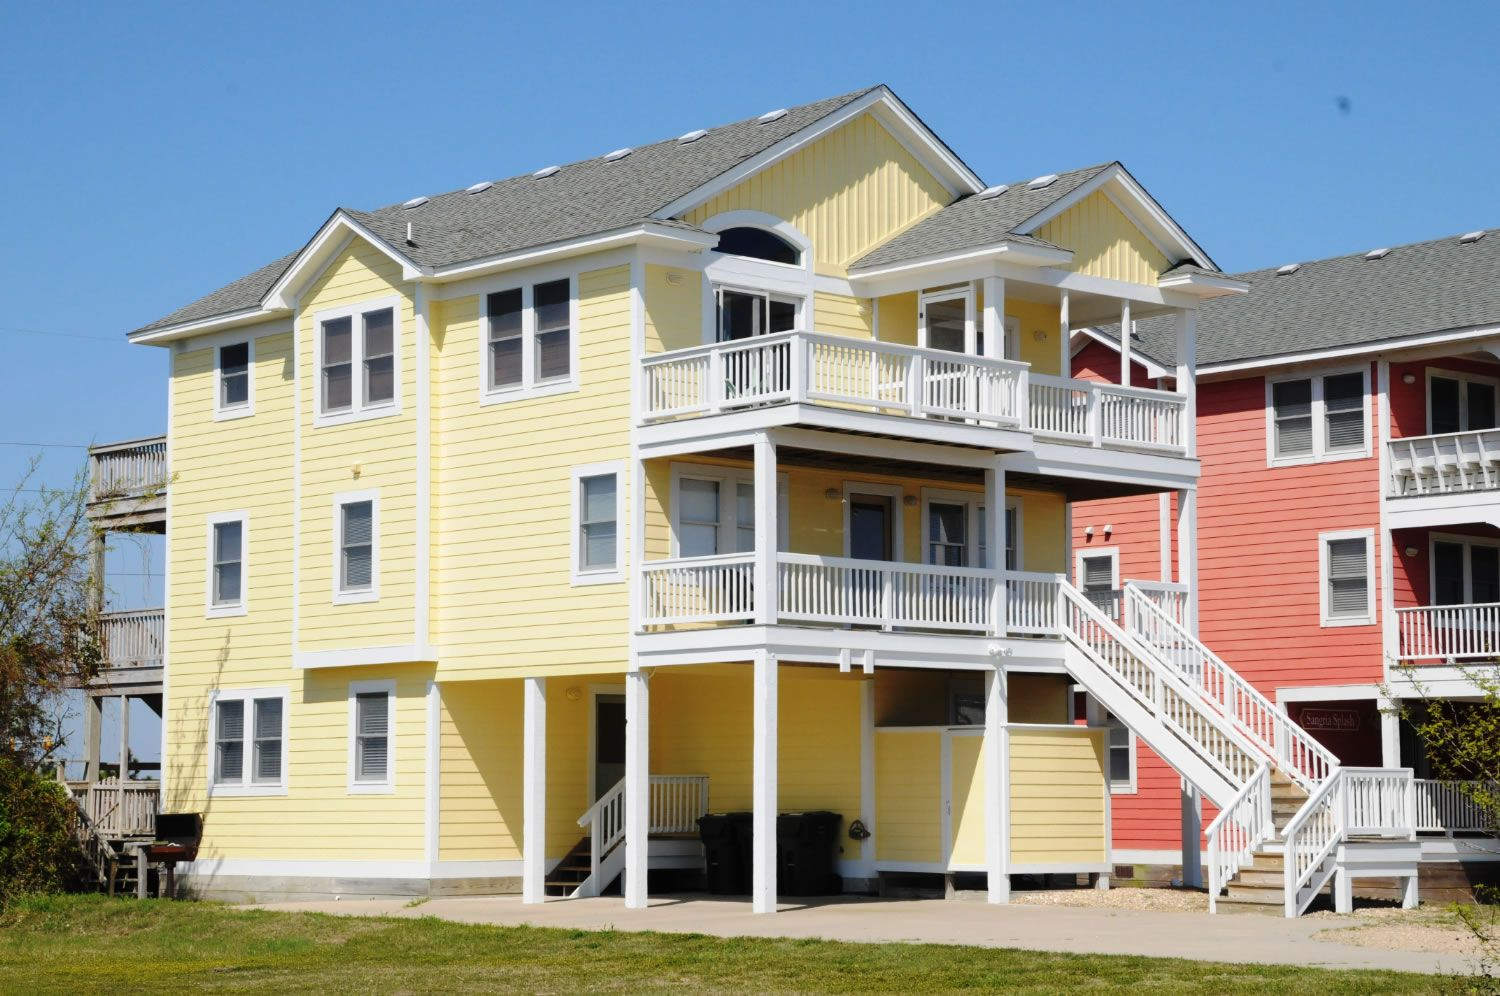 A Perfect Outer Banks Nc 6 Bedroom House Rental In South Nags Head Located Semi Oceanfront Fronts Beach Road